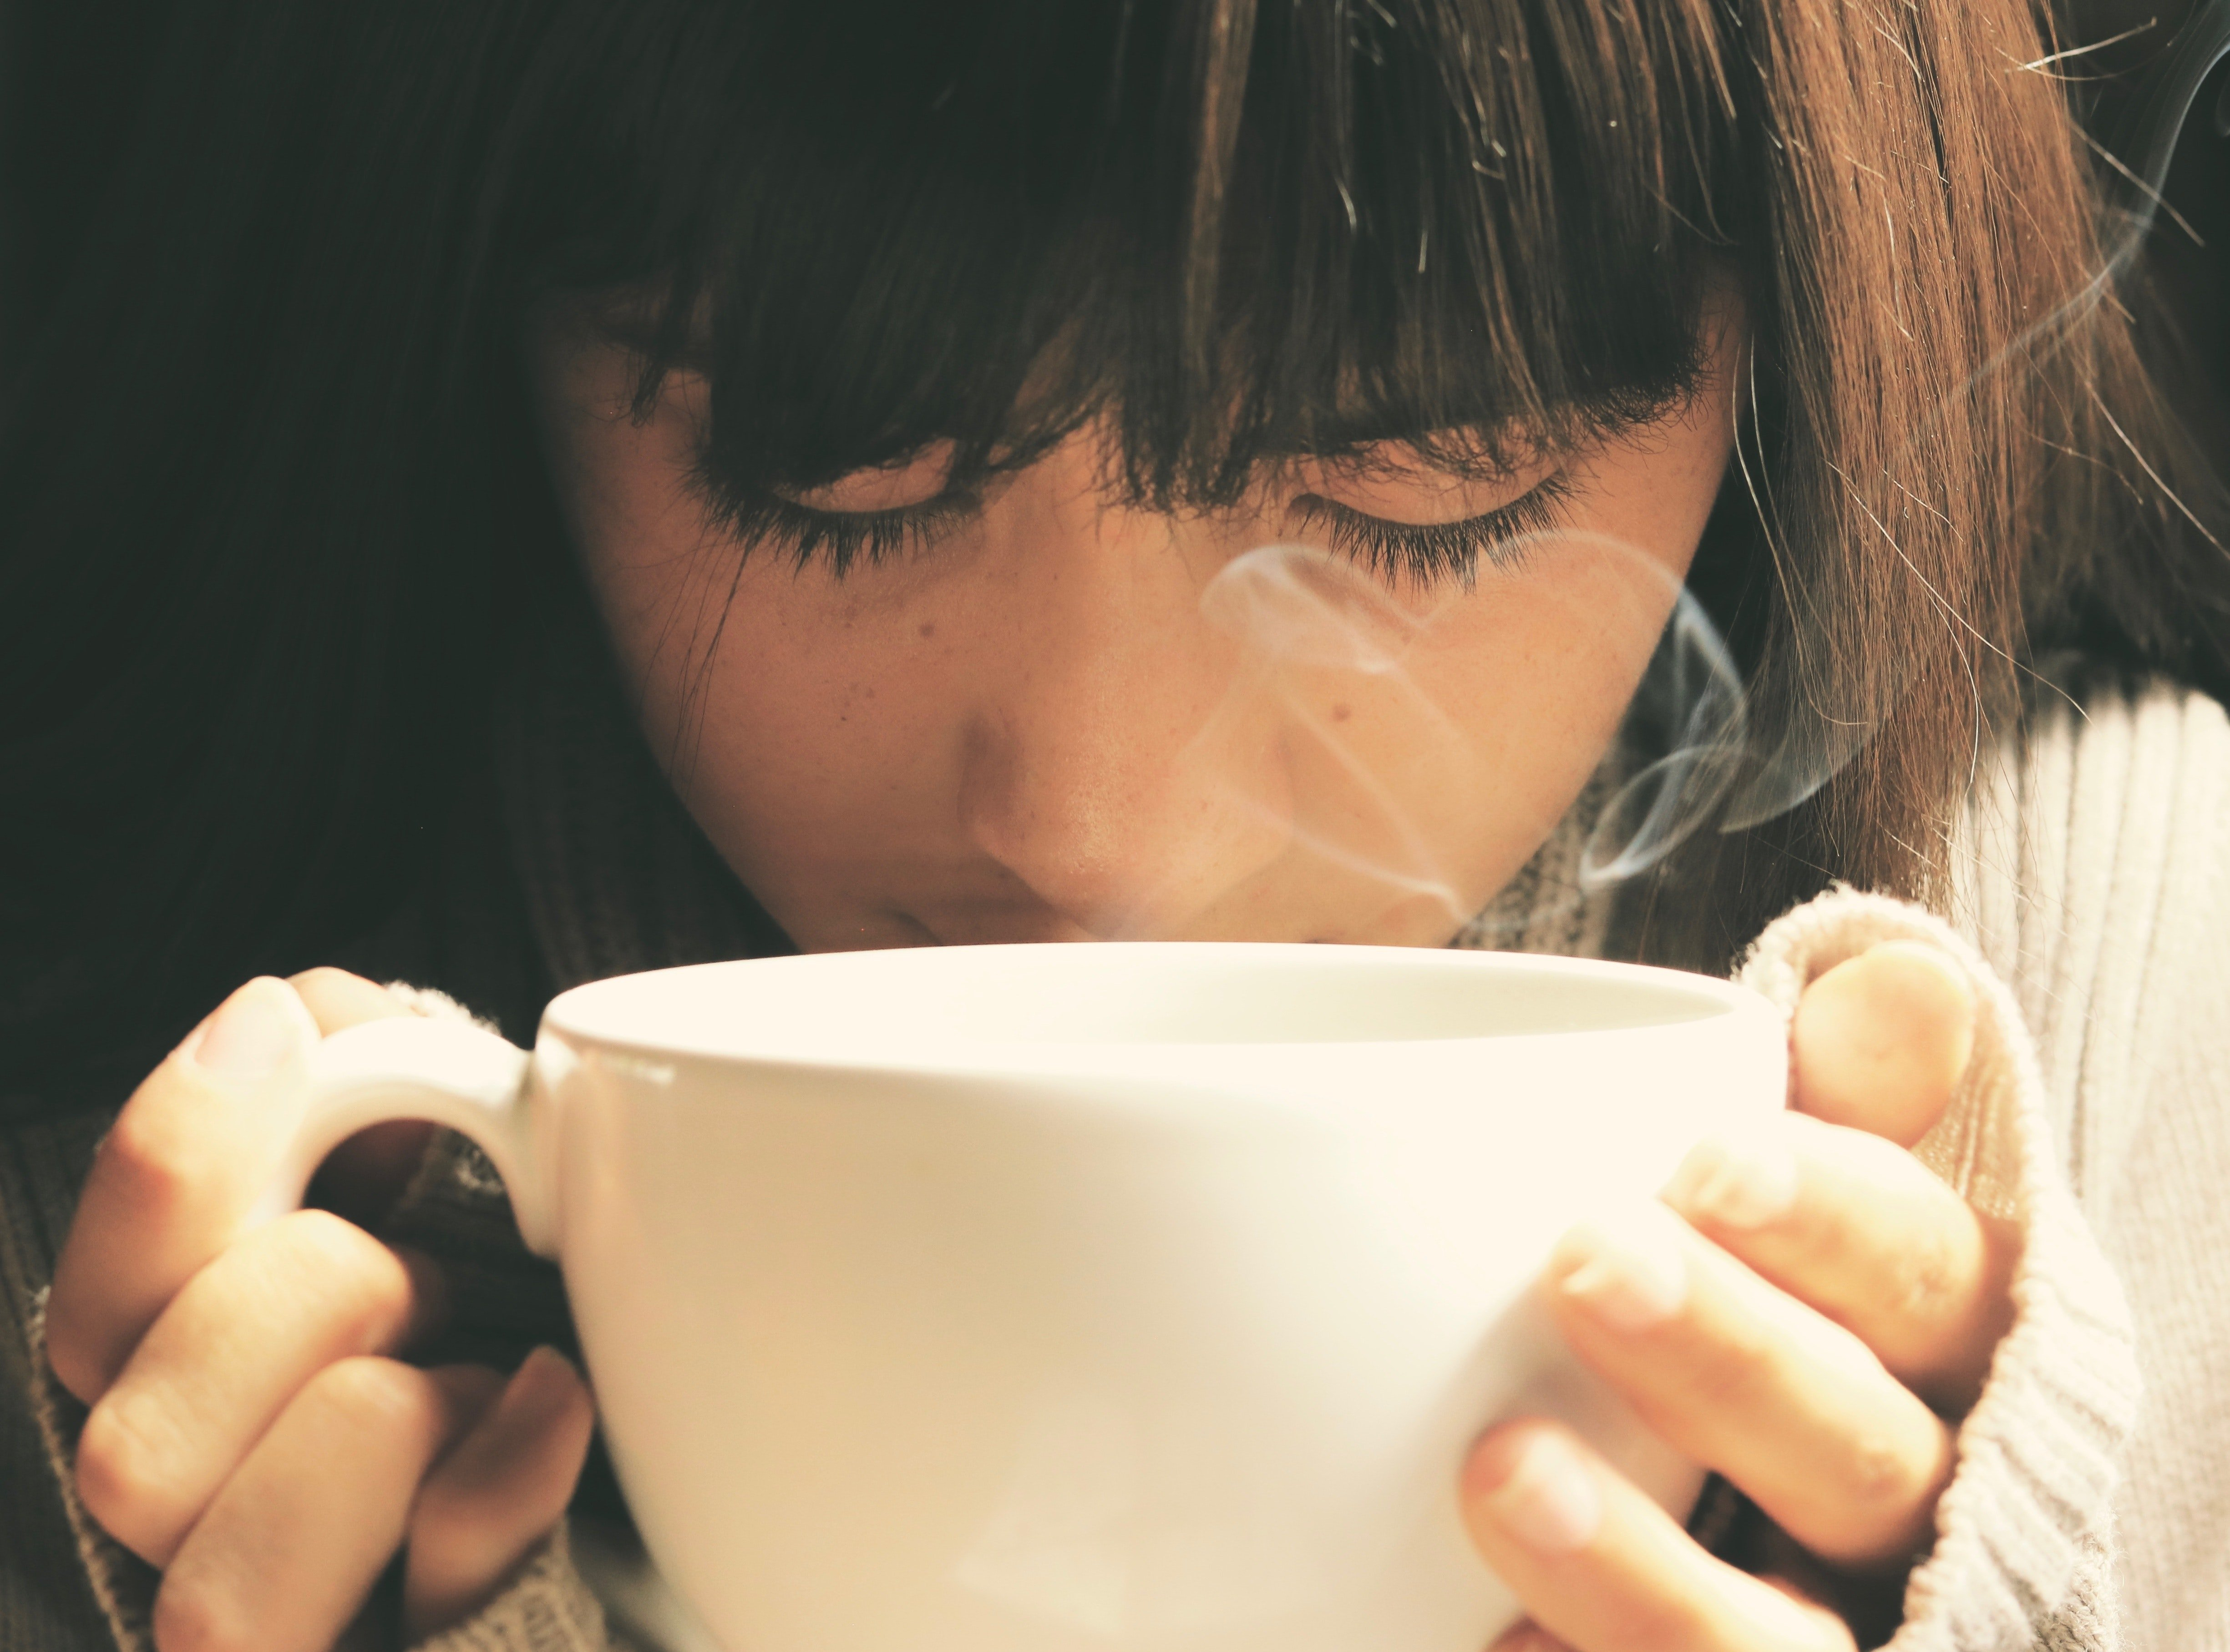 A moment of mindfulness through practicing coffee meditation